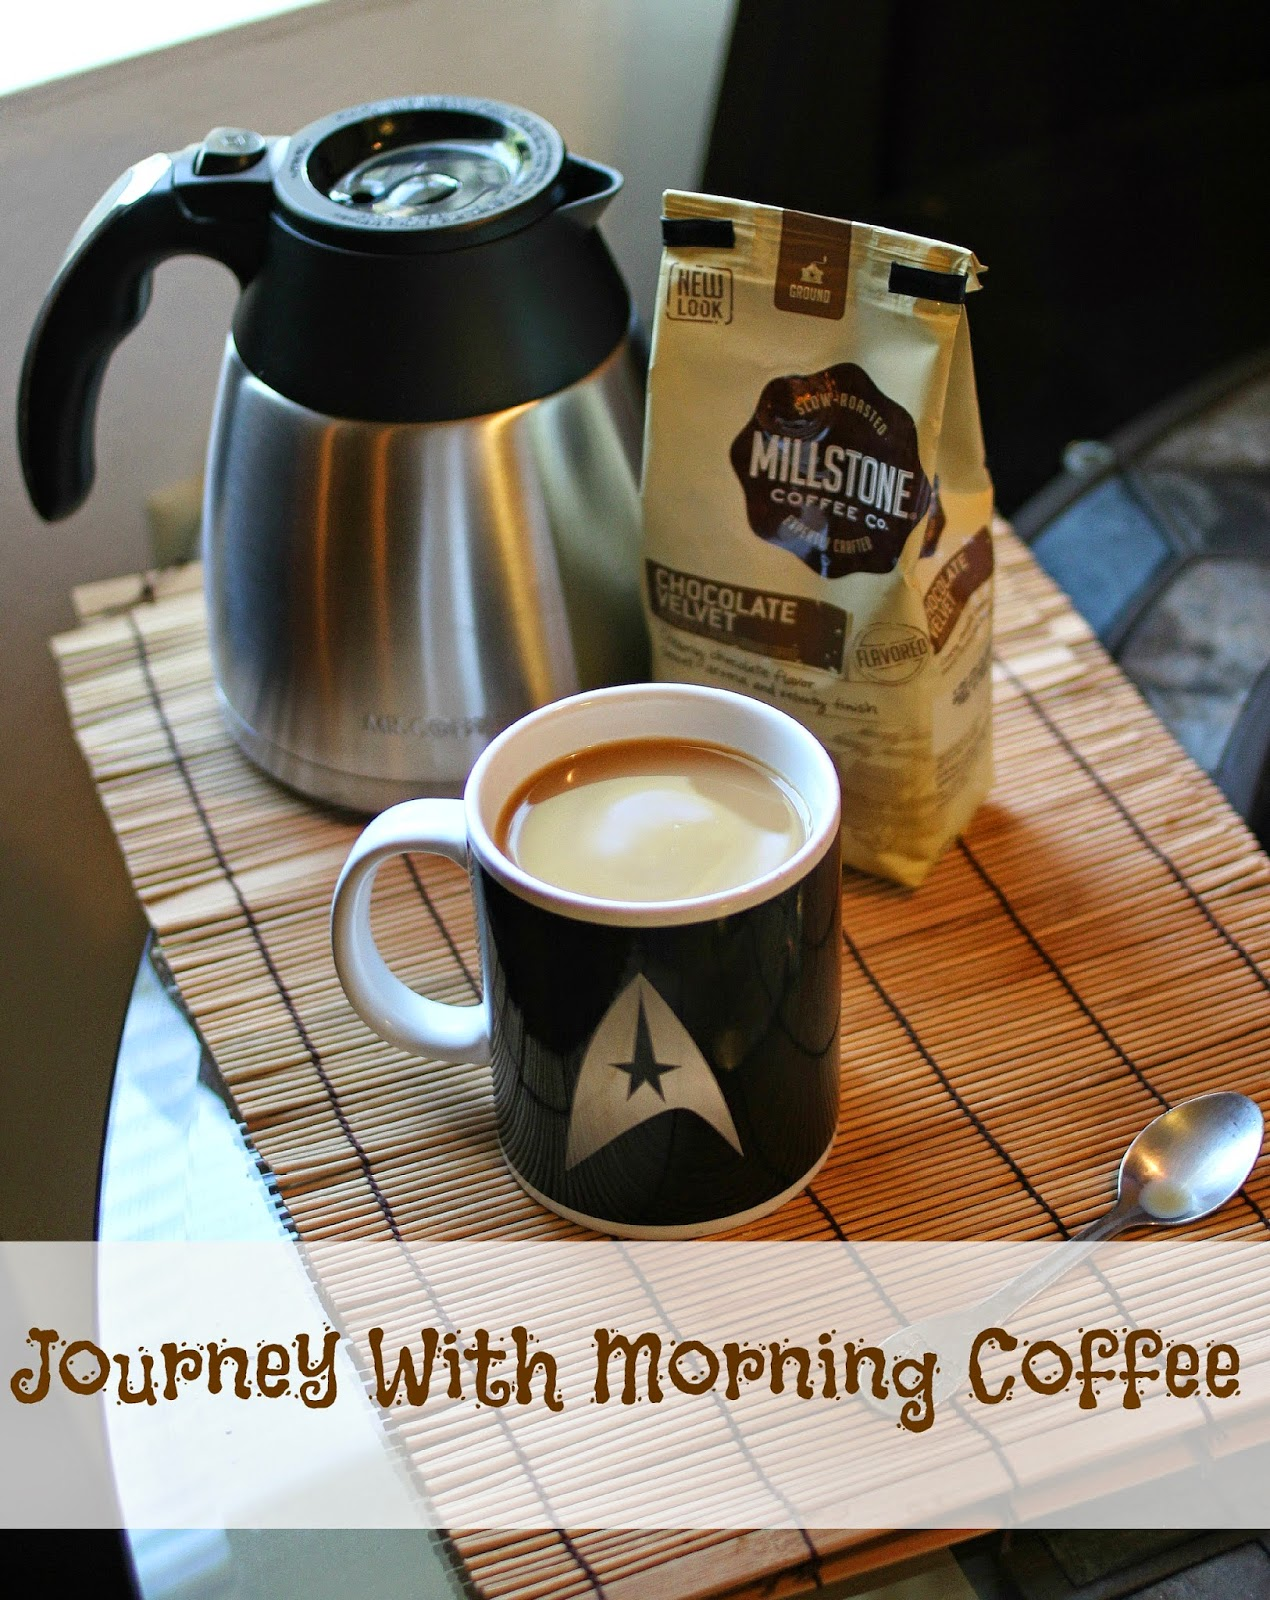 #CoffeeJourneys #Shop #Cbias #CollectiveBias